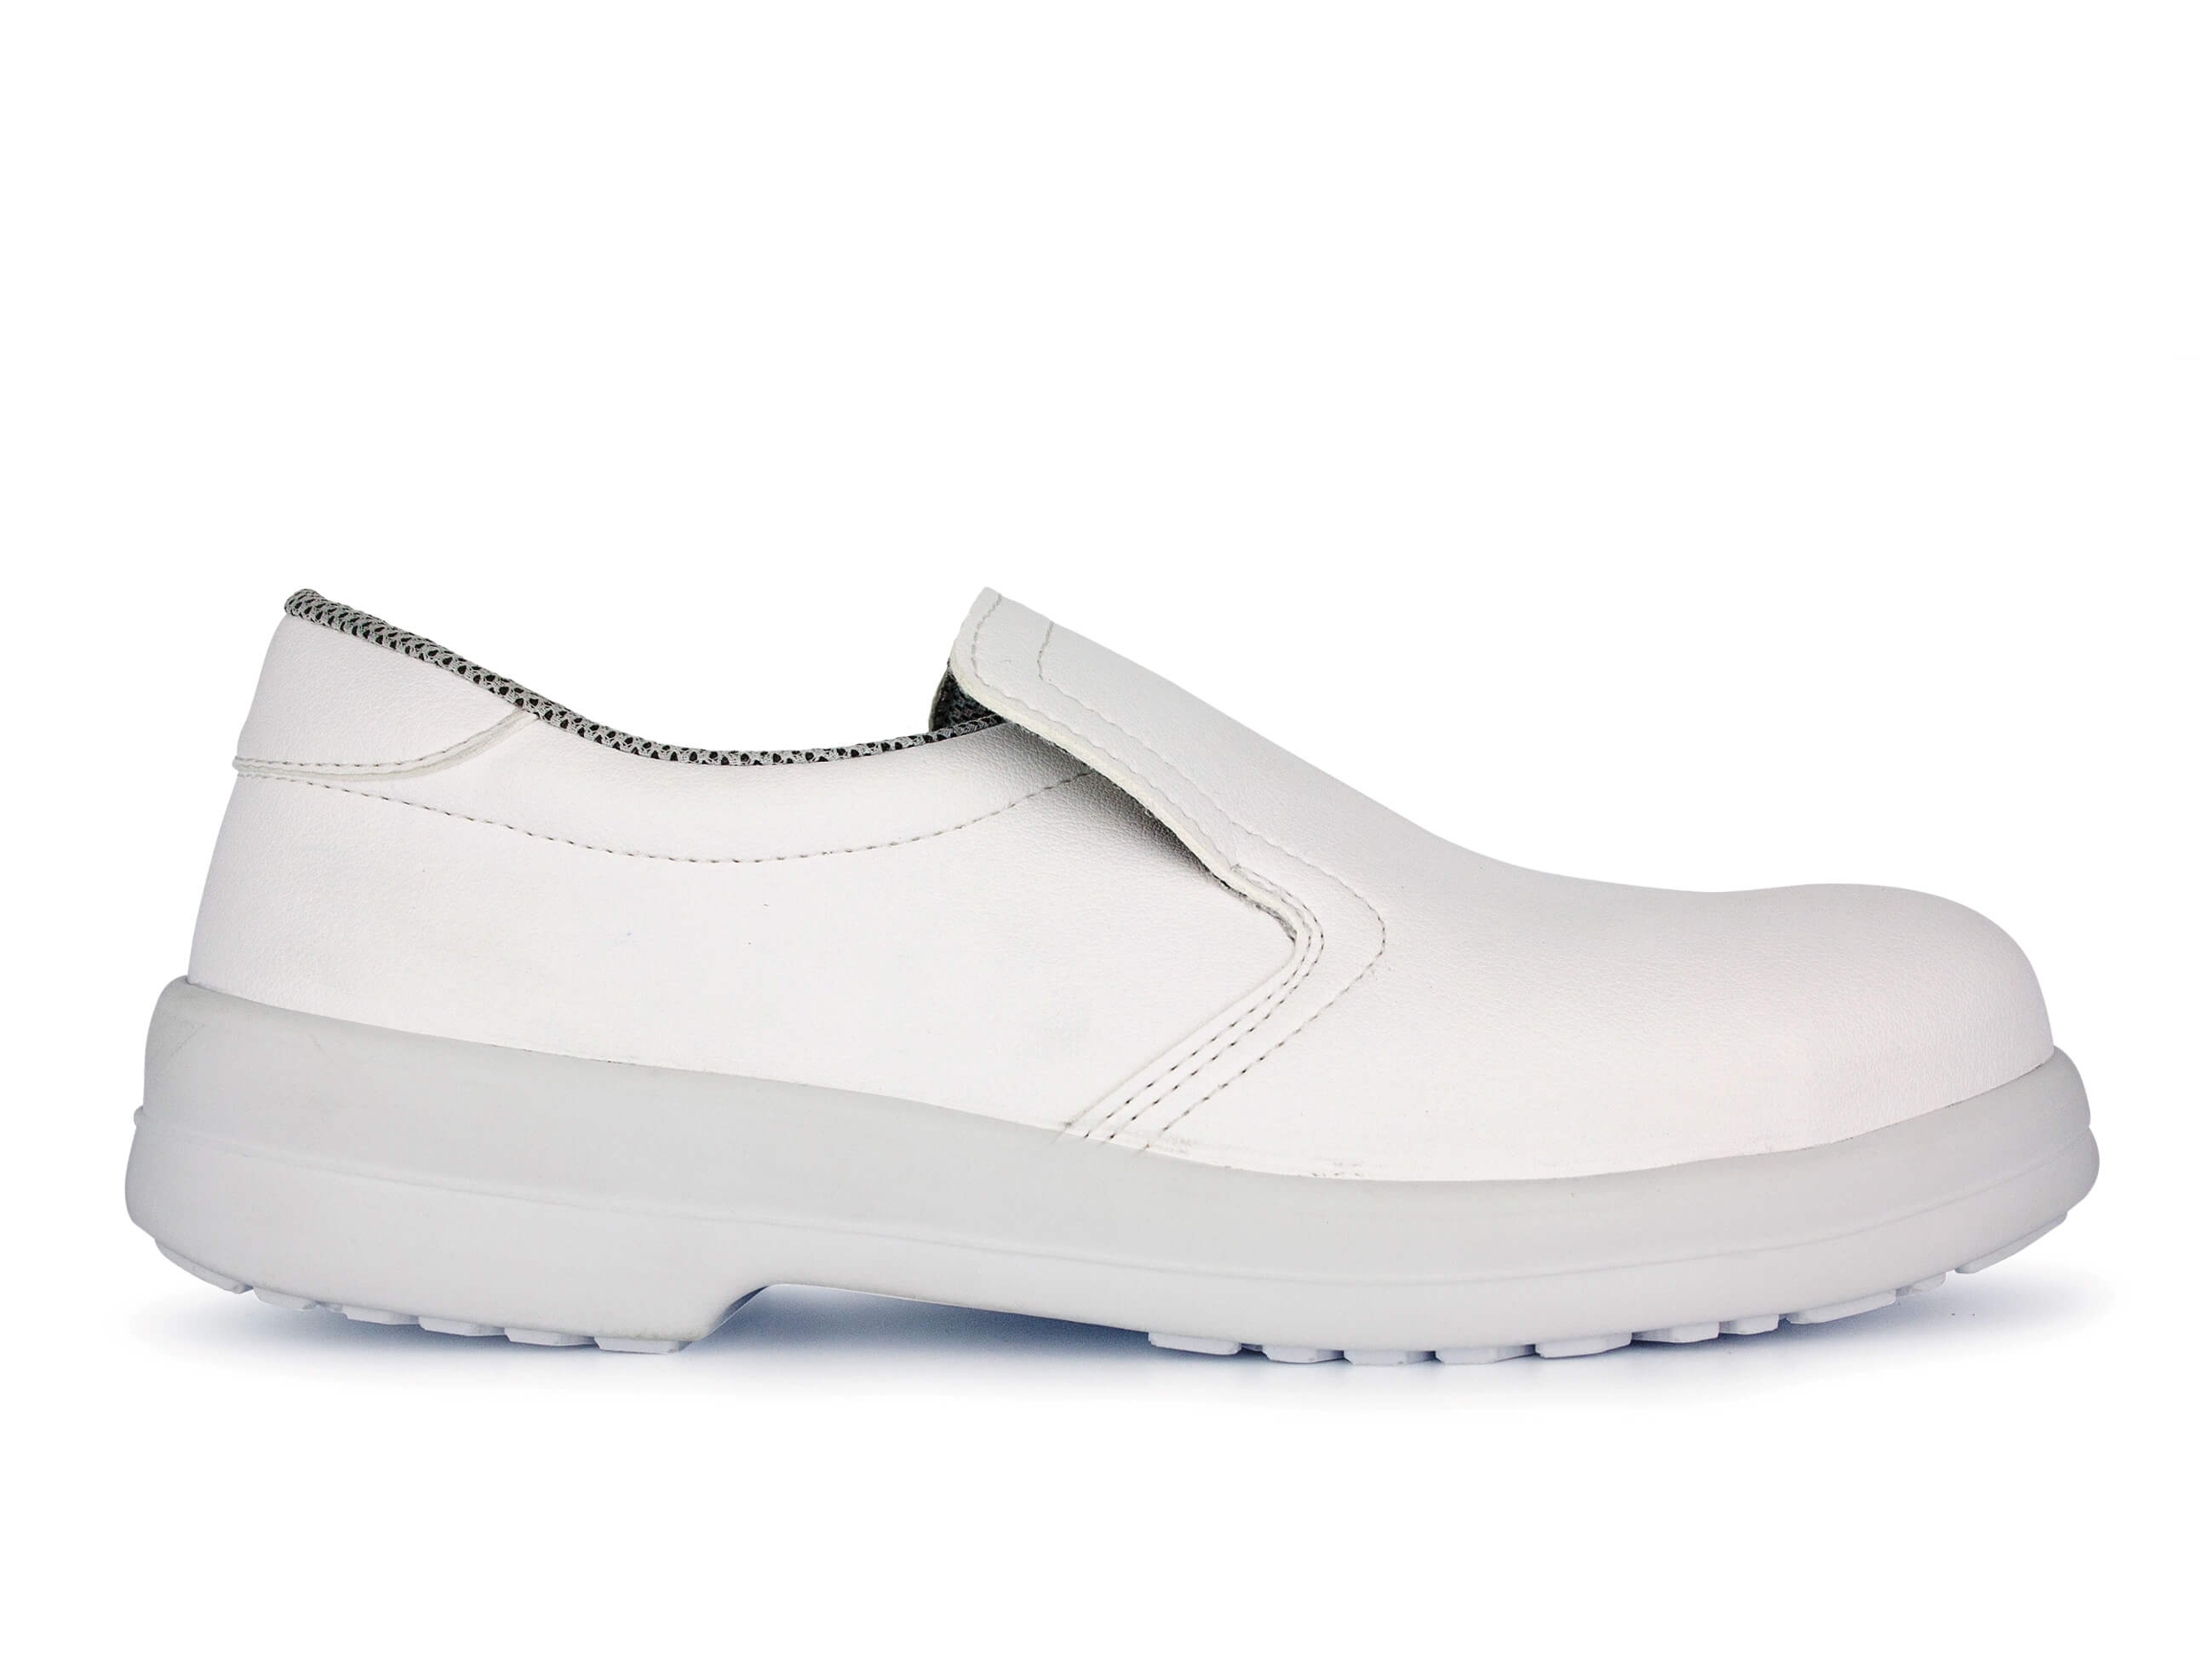 CHAUSSURE AGROALIMENTAIRE TED S2 BLANC profil - NORDWAYS. Chargement du zoom f5d35c1d24ea